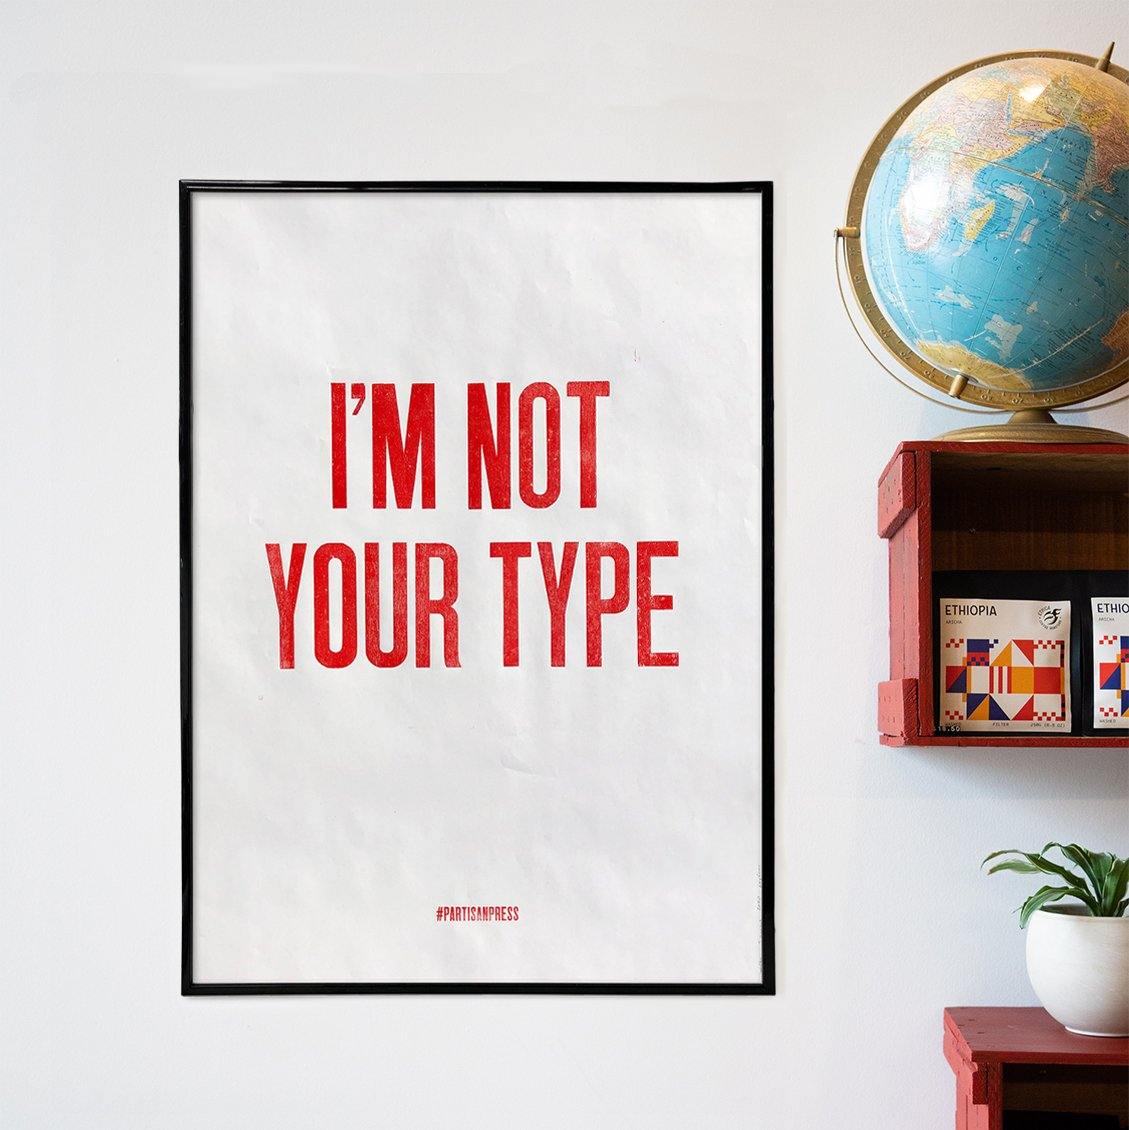 Poster IM NOT YOUR TYPE - Ethica Roasters